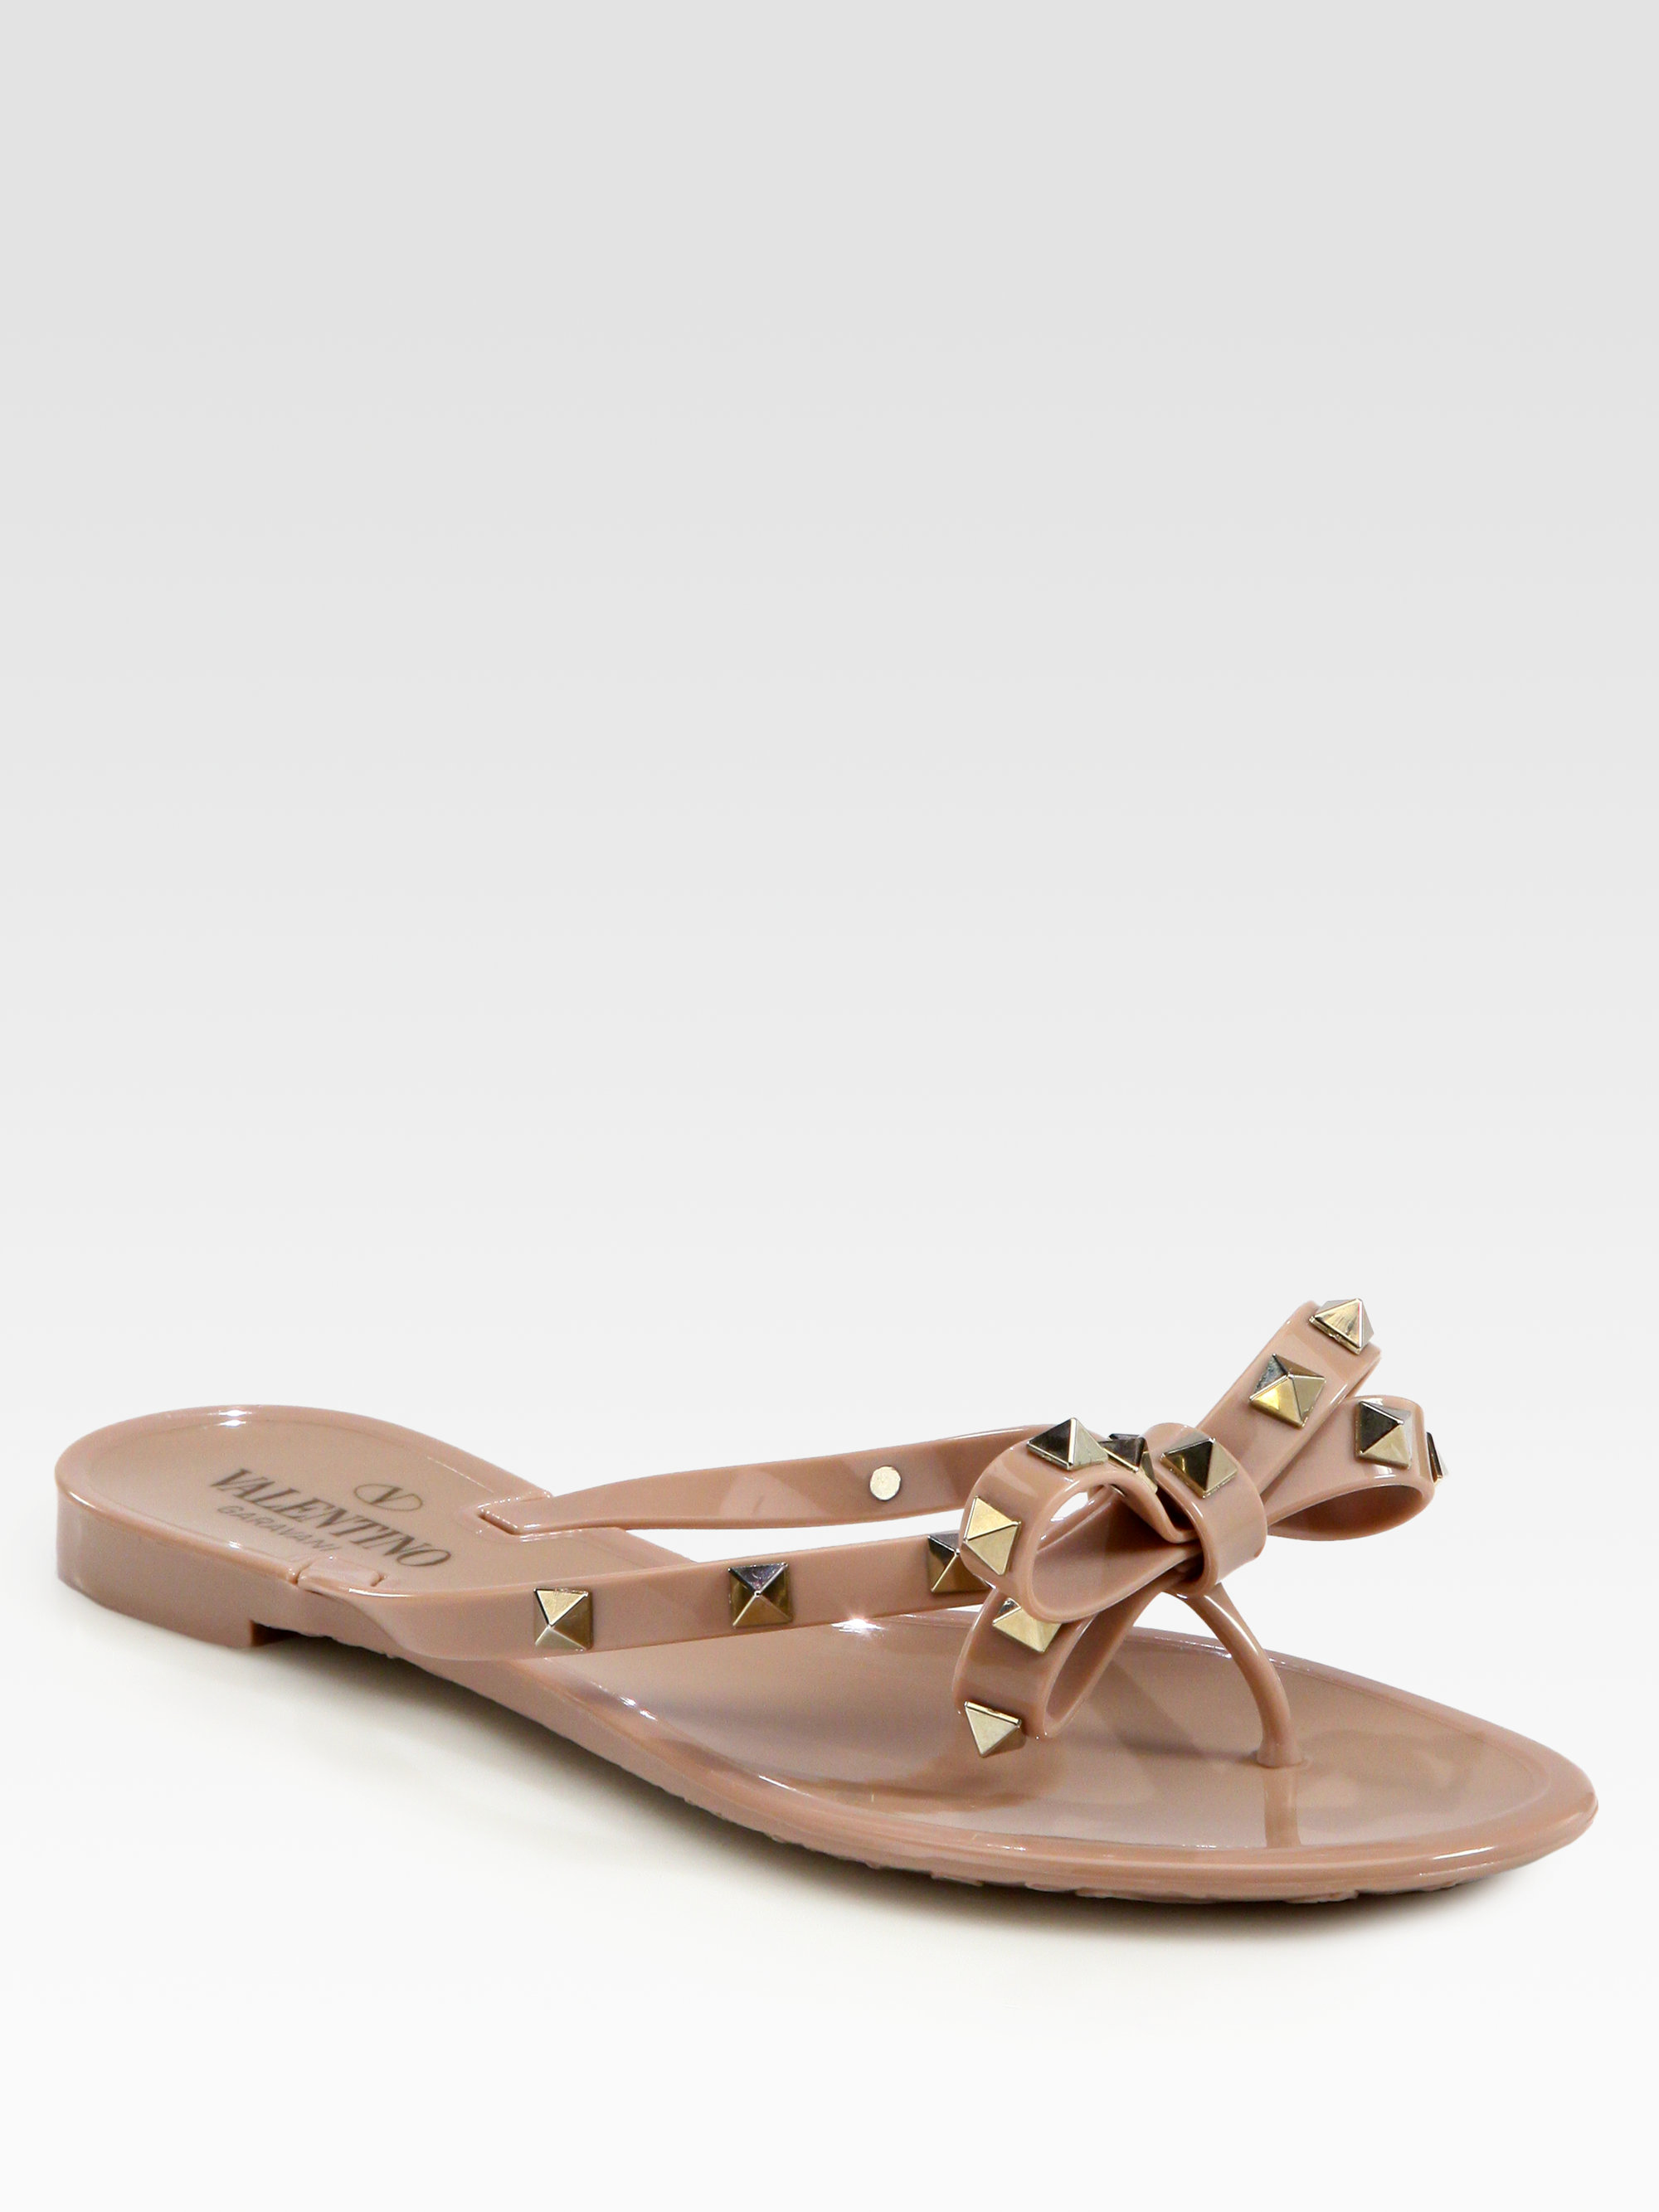 8c459e83025777 Lyst - Valentino Rockstud Studded Thong Bow Jelly Flip Flops in Black